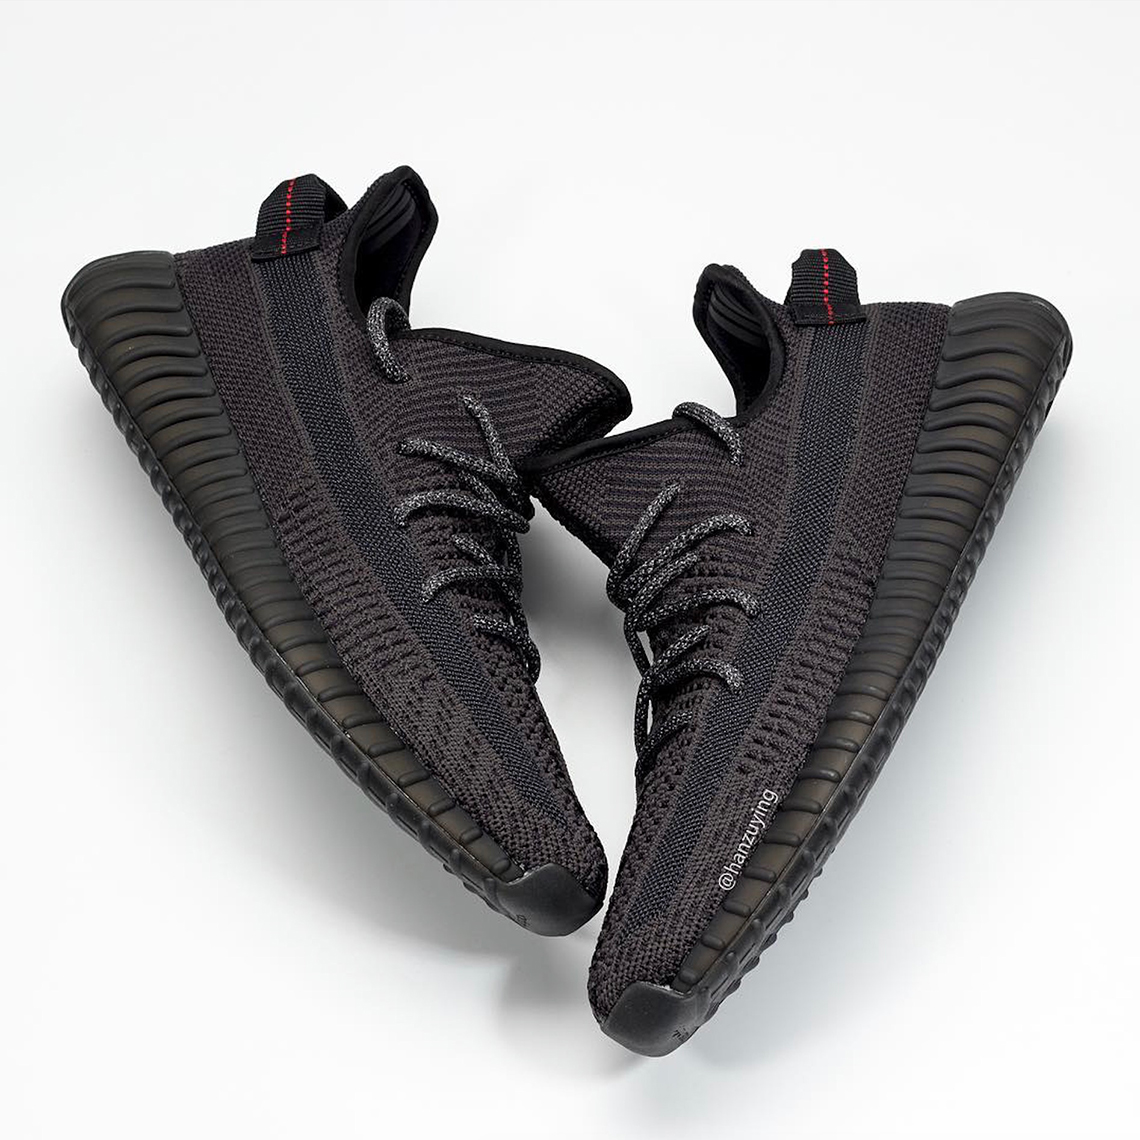 sports shoes 31267 46d38 adidas Yeezy Boost 350 v2. Release Date  June 22nd, 2019